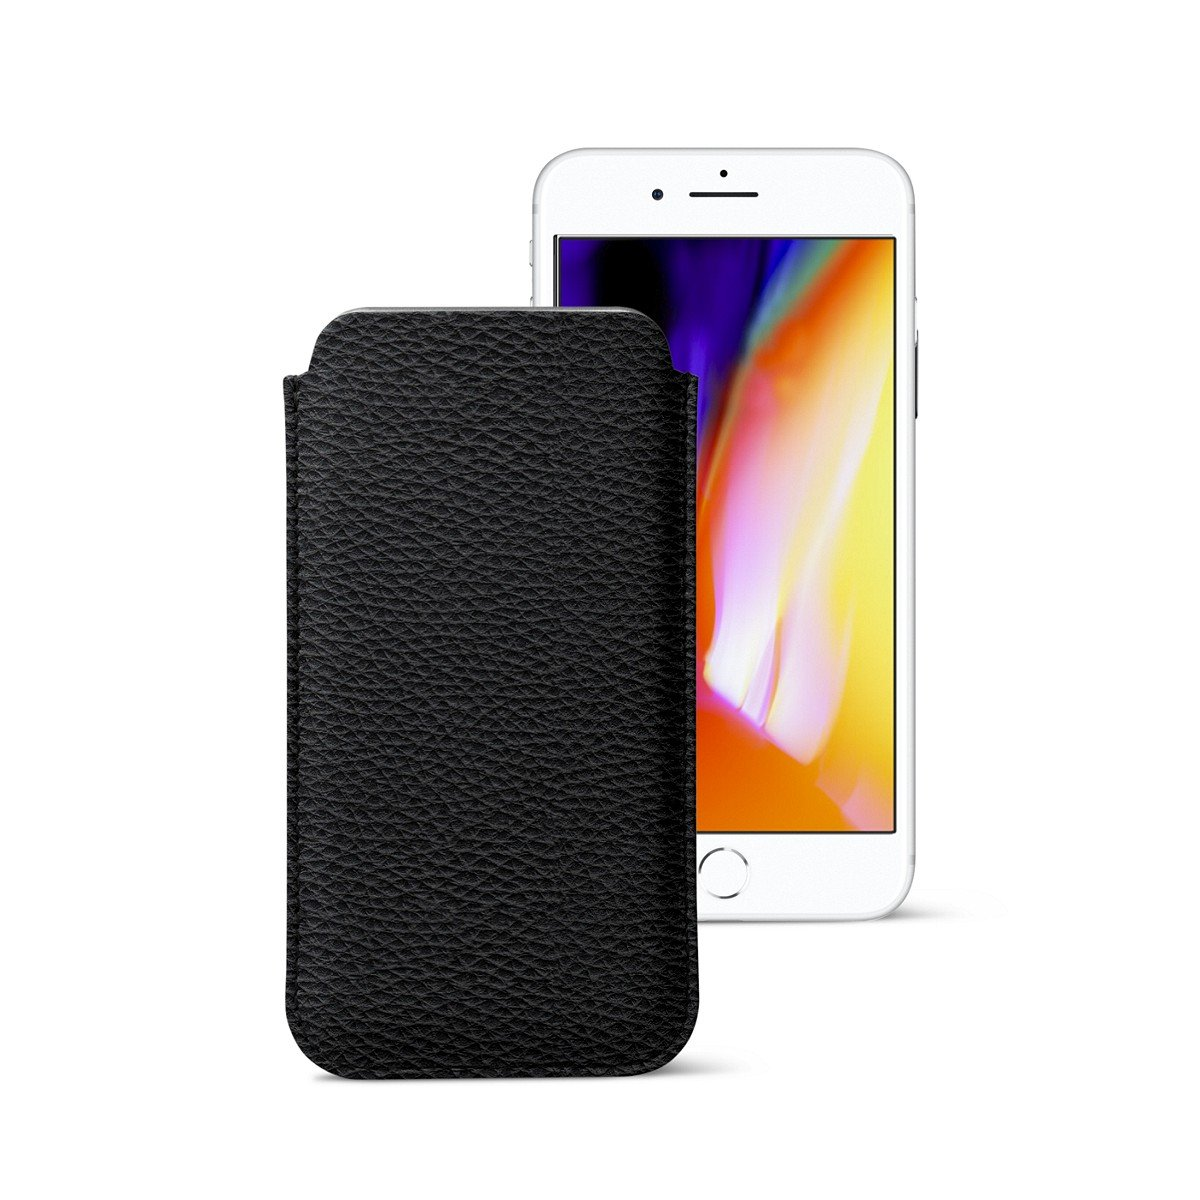 Lucrin - Classic Ultra Thin Sleeve, Protective Soft Case Cover for iPhone 8/7/ 6 - Black - Granulated Leather